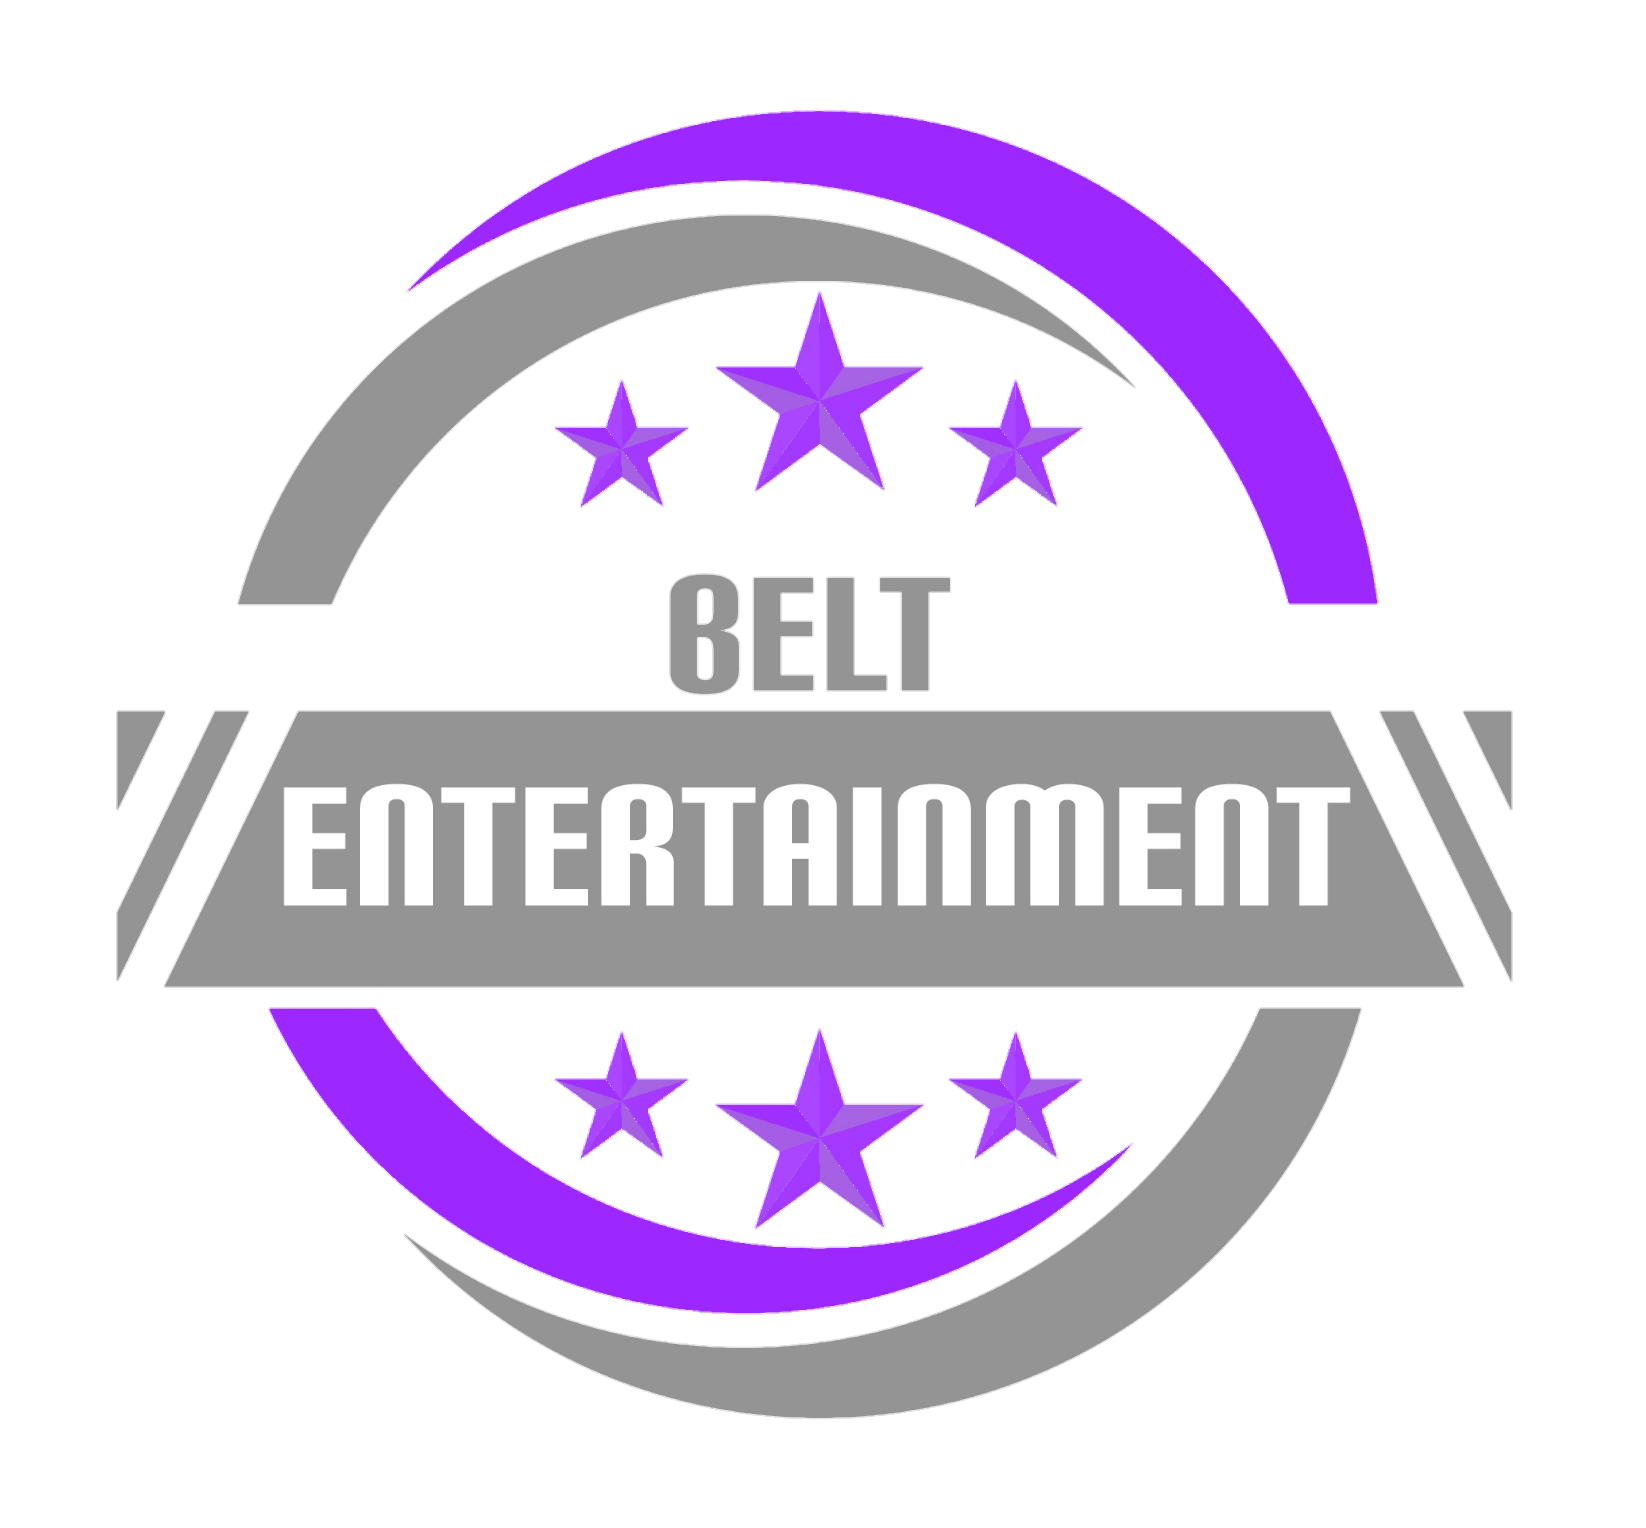 Belt Entertainment.com